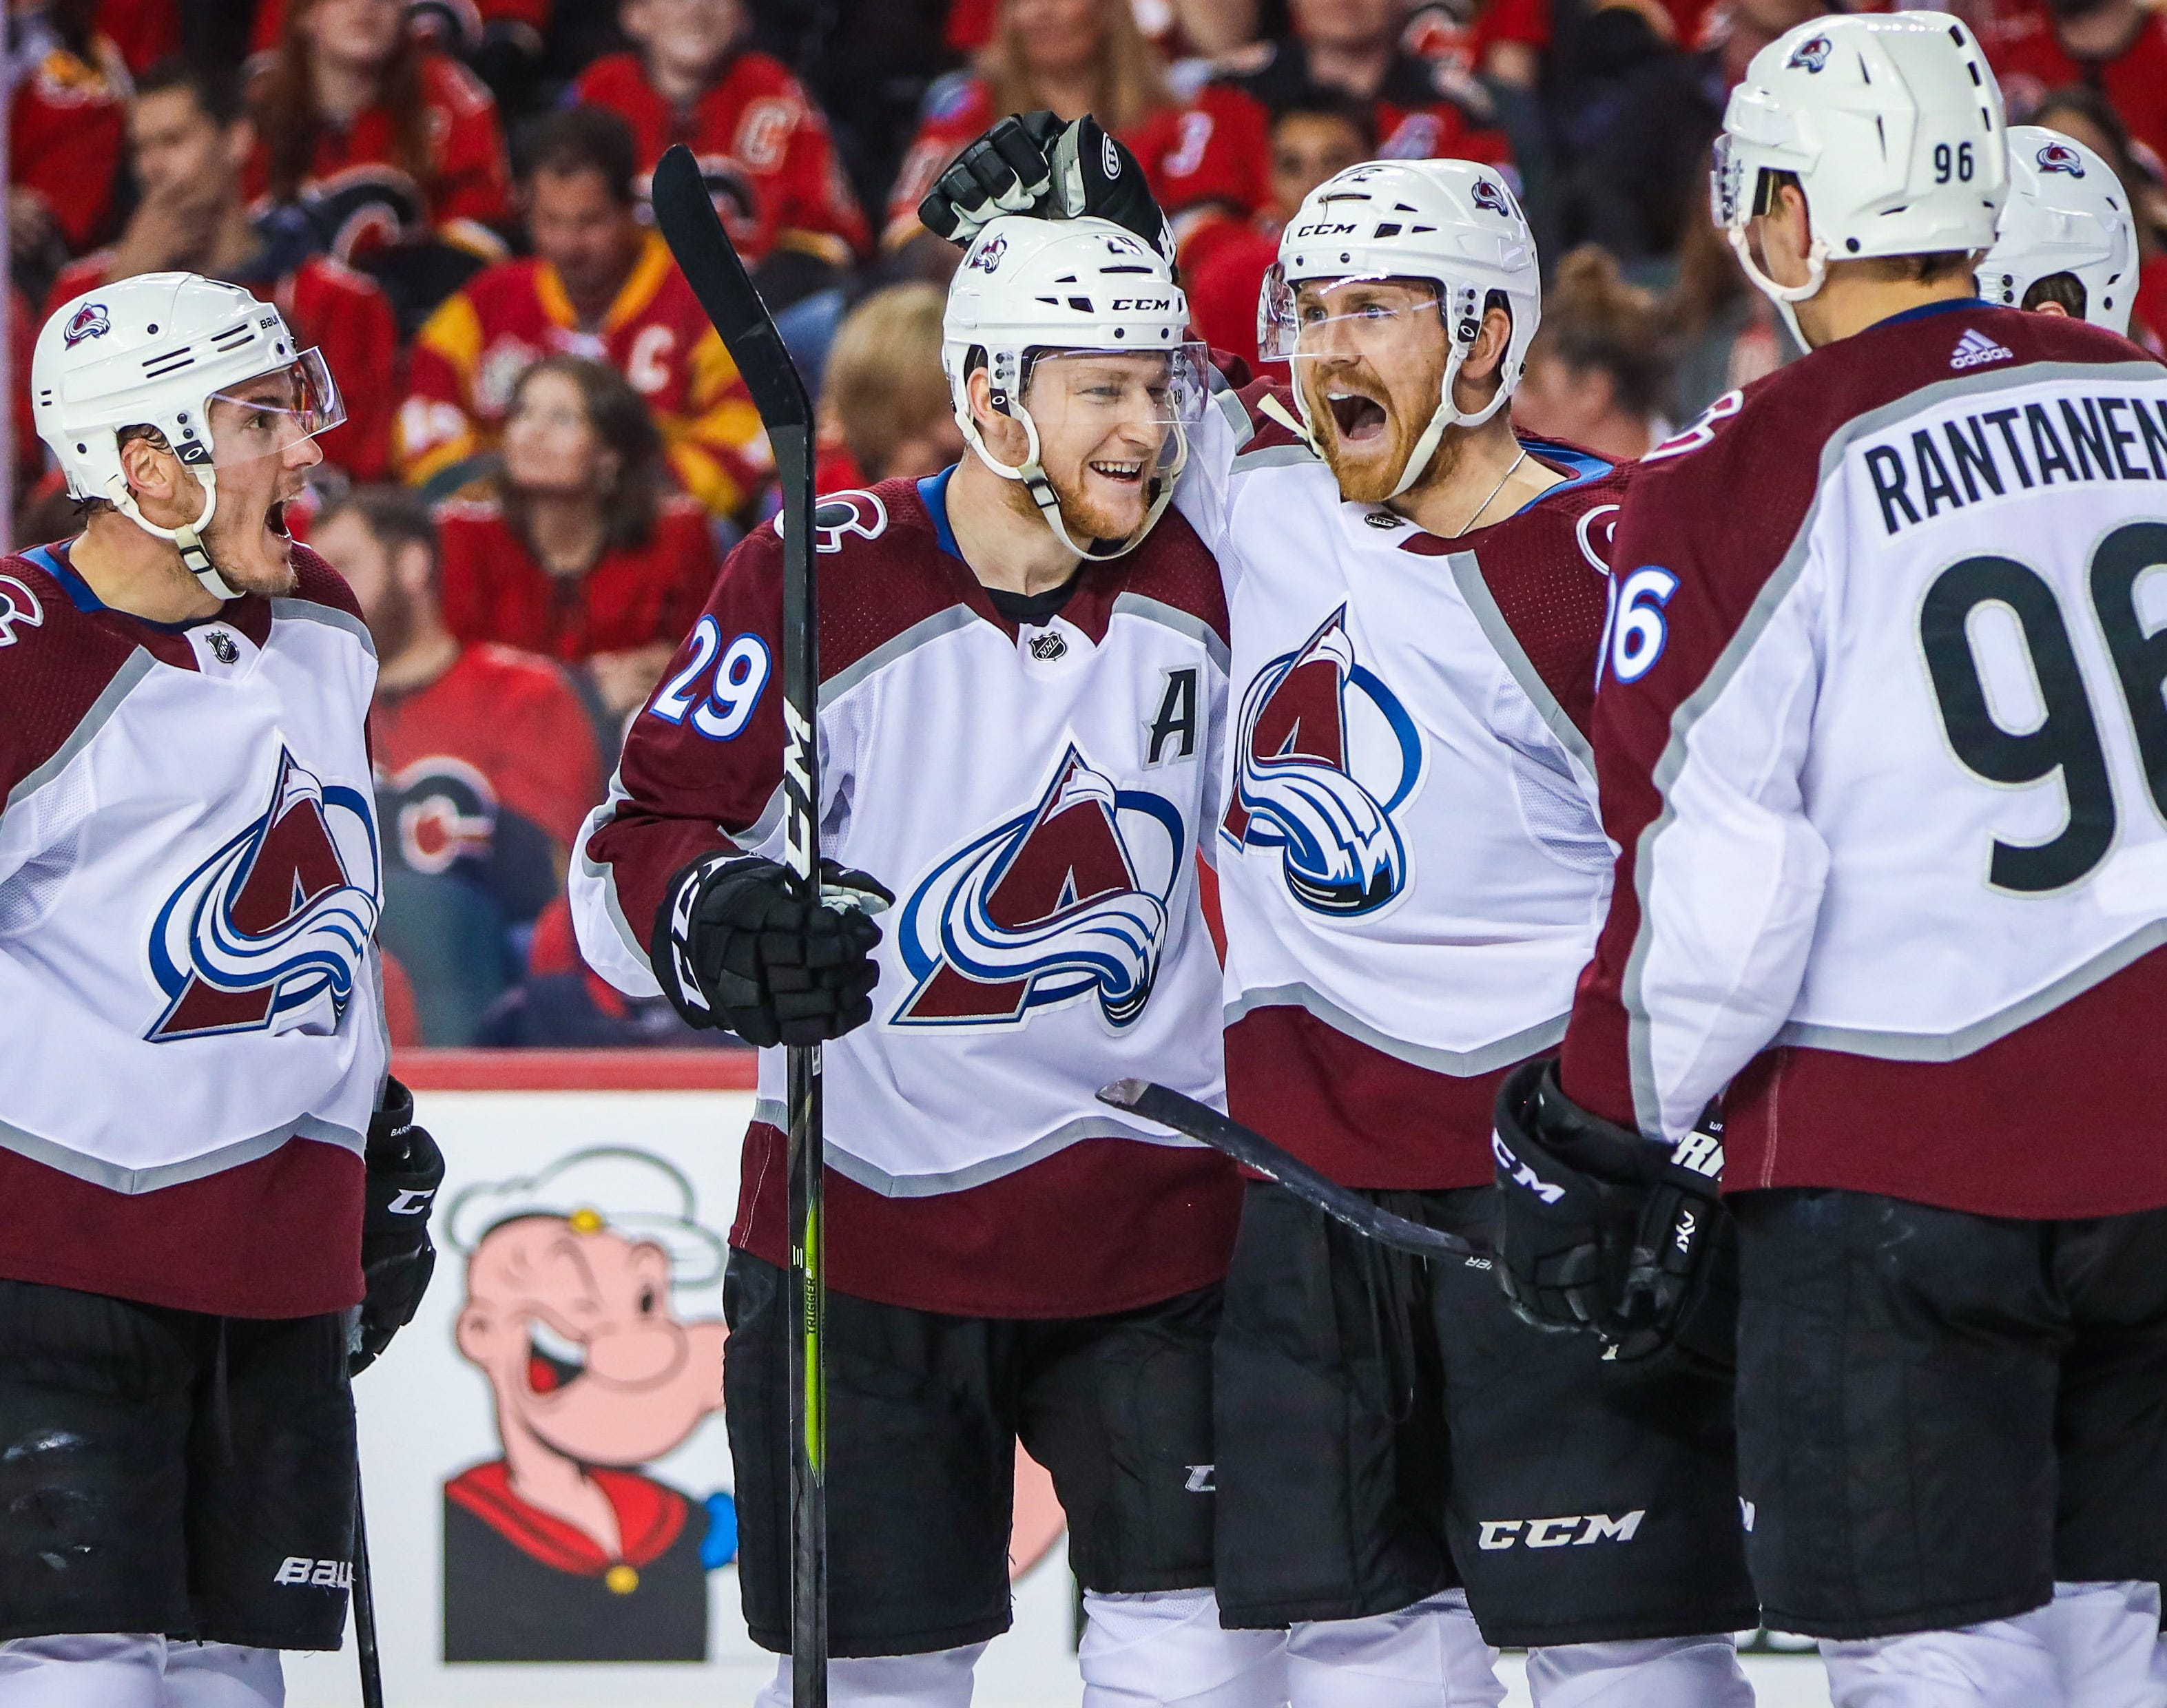 The Colorado Avalanche's Colin Wilson celebrates with teammates after scoring a goal in the series-clinching win over the Calgary Flames.